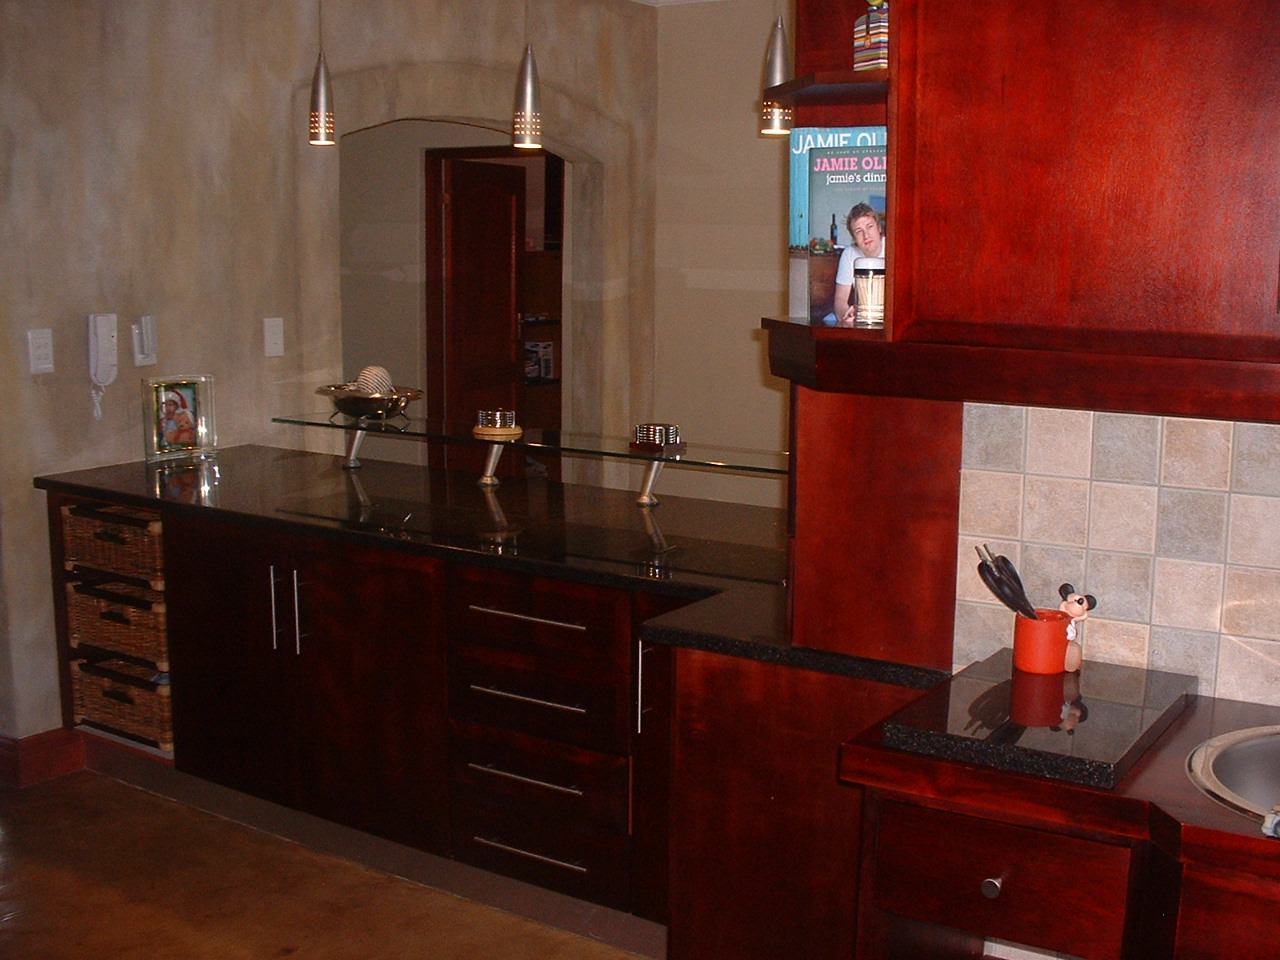 Mahogany cupboards nico 39 s kitchens for Kitchen designs pretoria